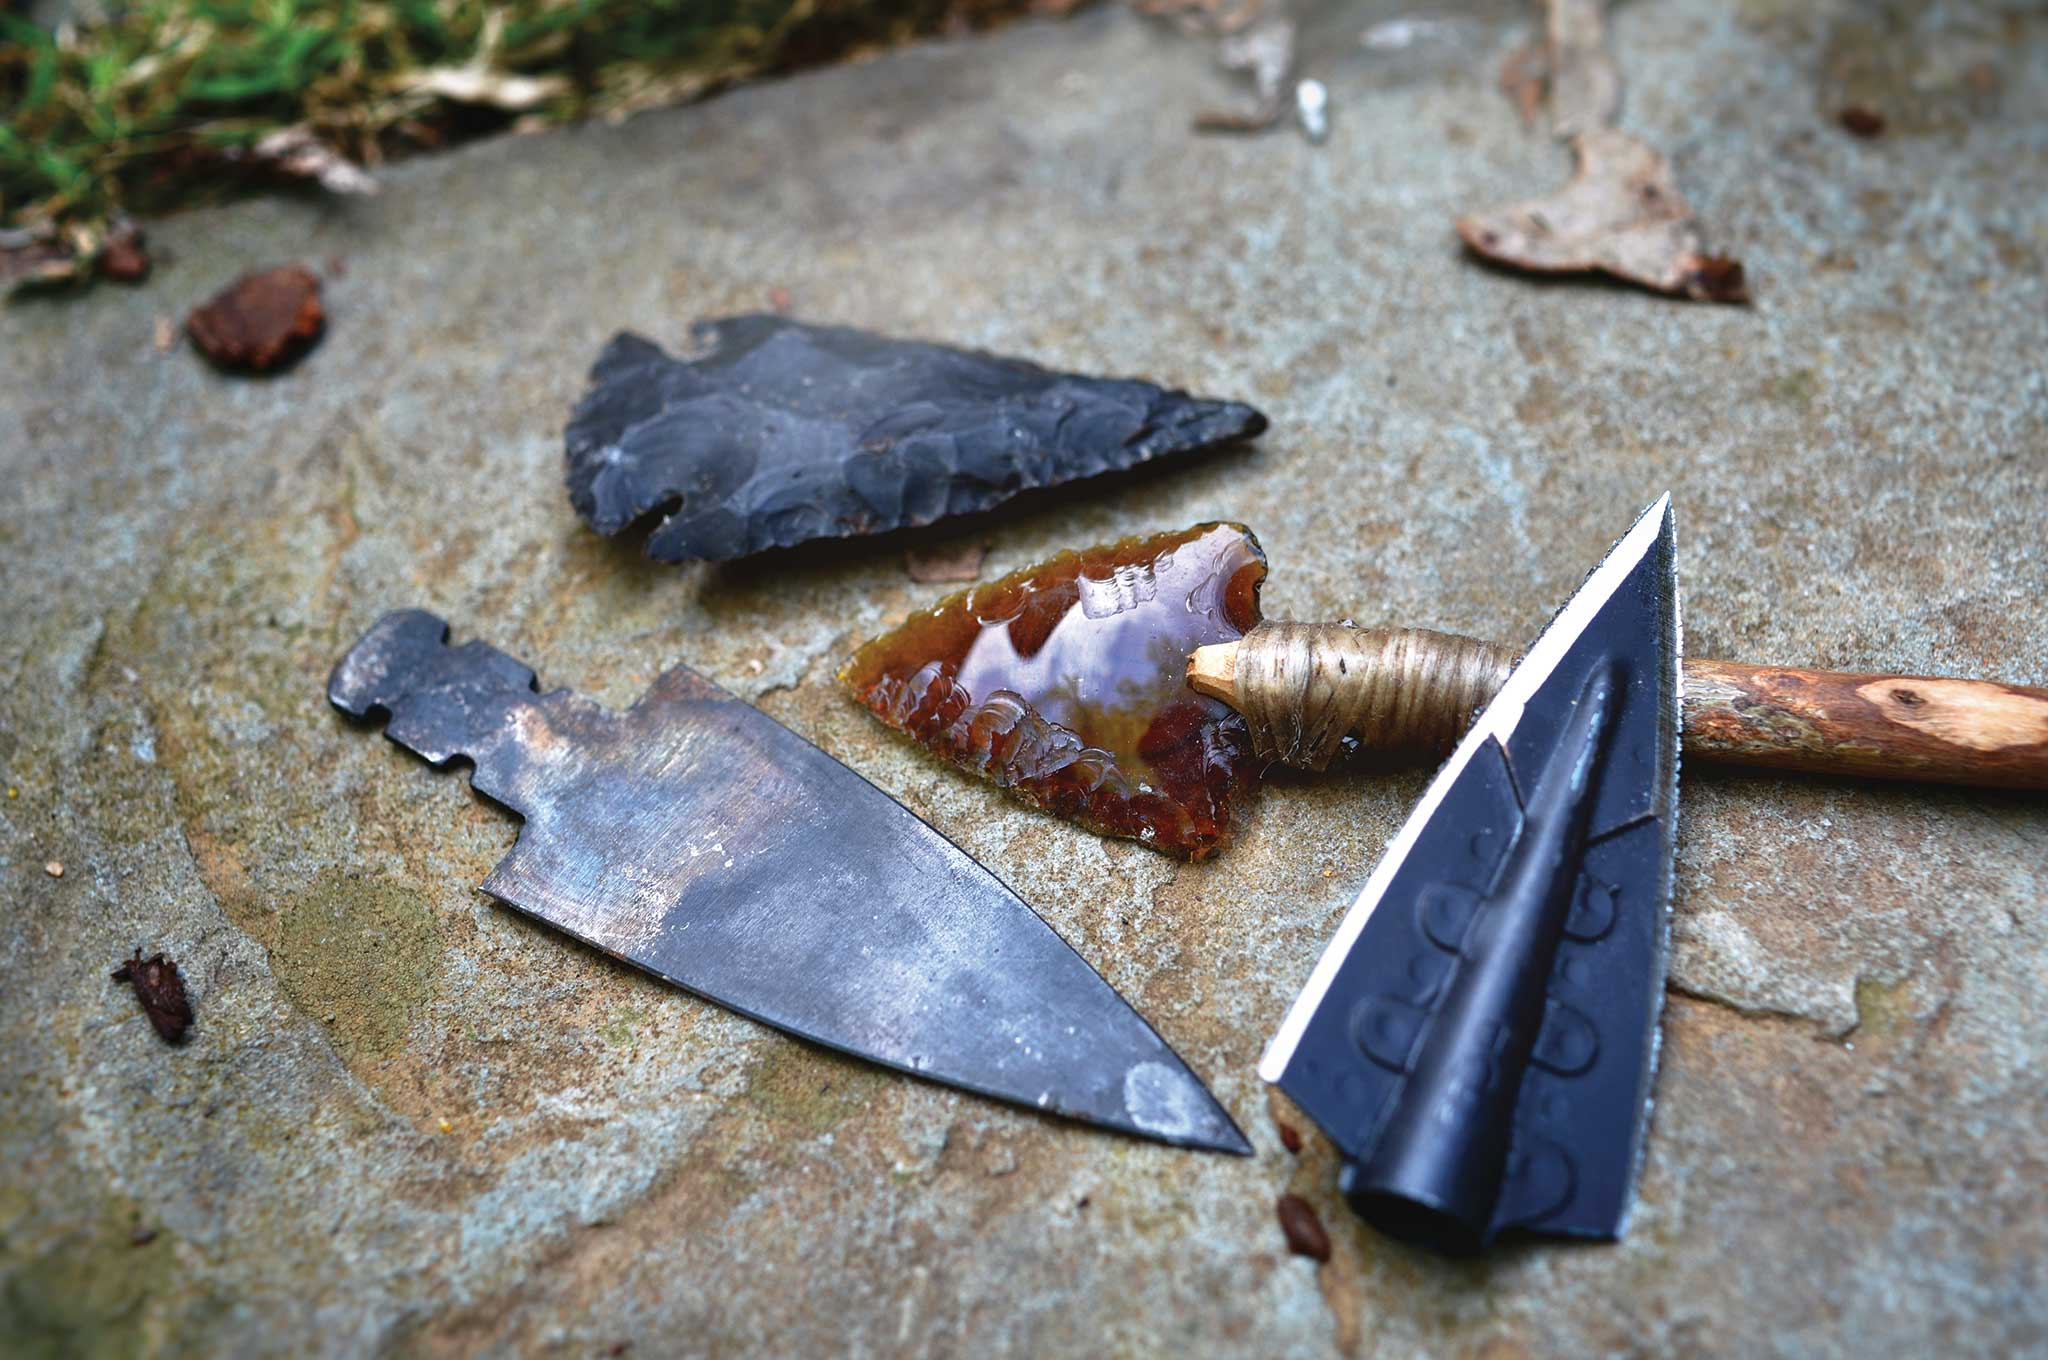 Arrowheads are modern glue-on broad-head, trade blank metal point, a